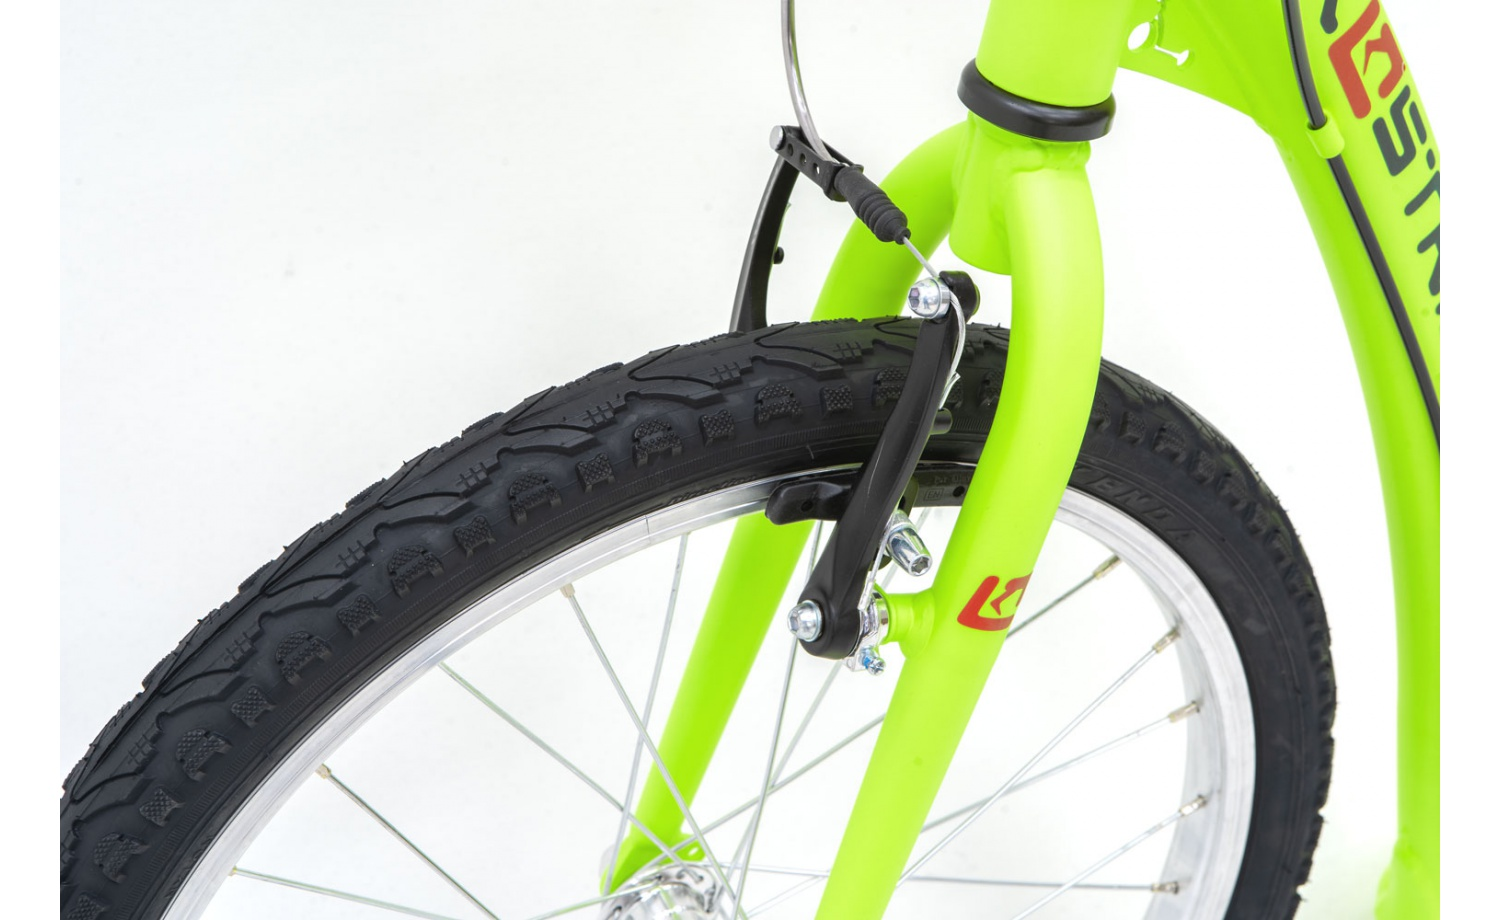 Footbike KOSTKA HILL FUN KID (G5)